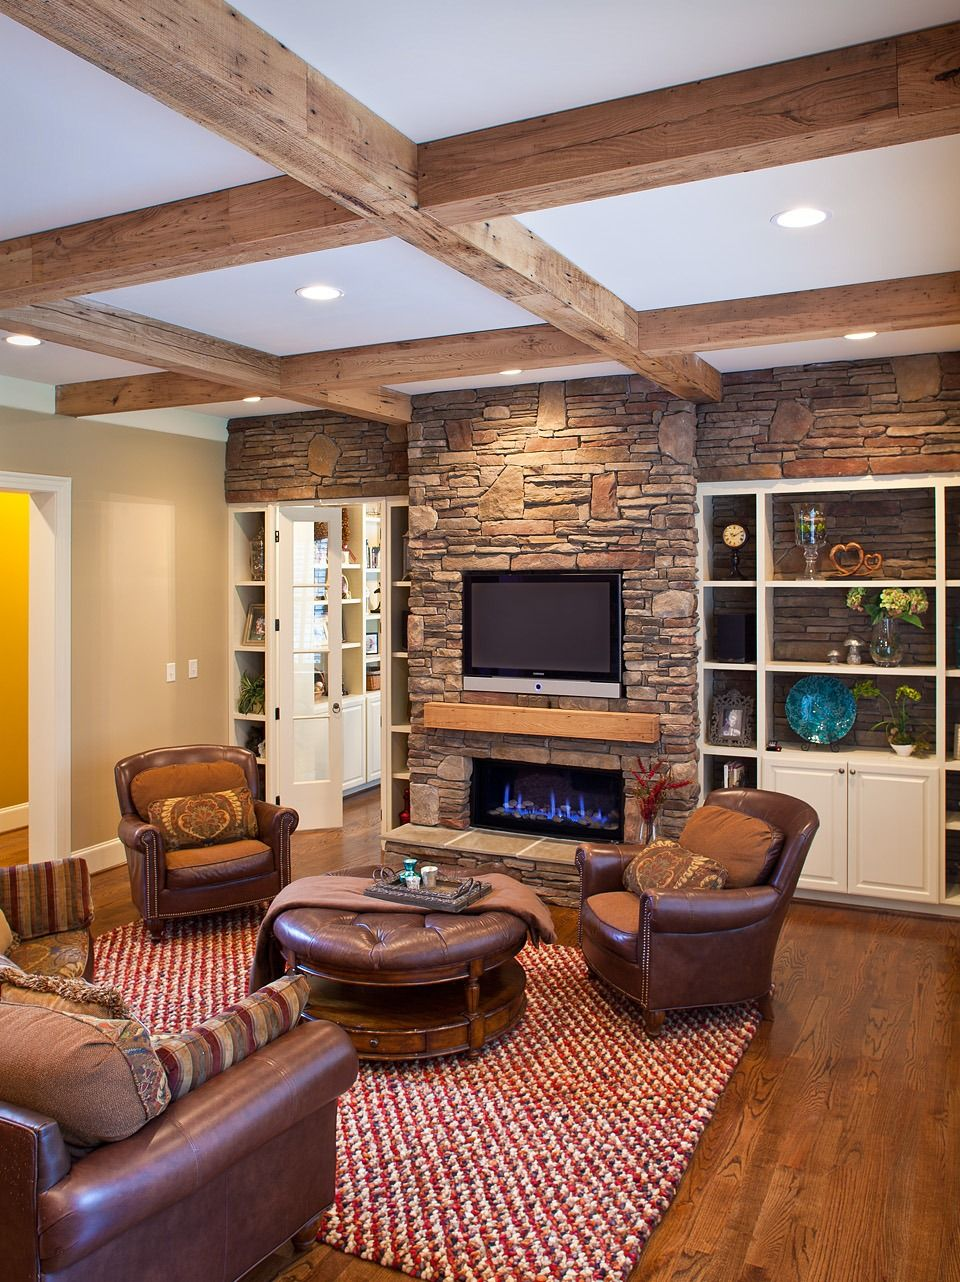 New fireplace with tv eclectic family room minneapolis - Family Room Expansion Included The Addition Of Antique Reclaimed Chestnut Beams And Mantel A Stone